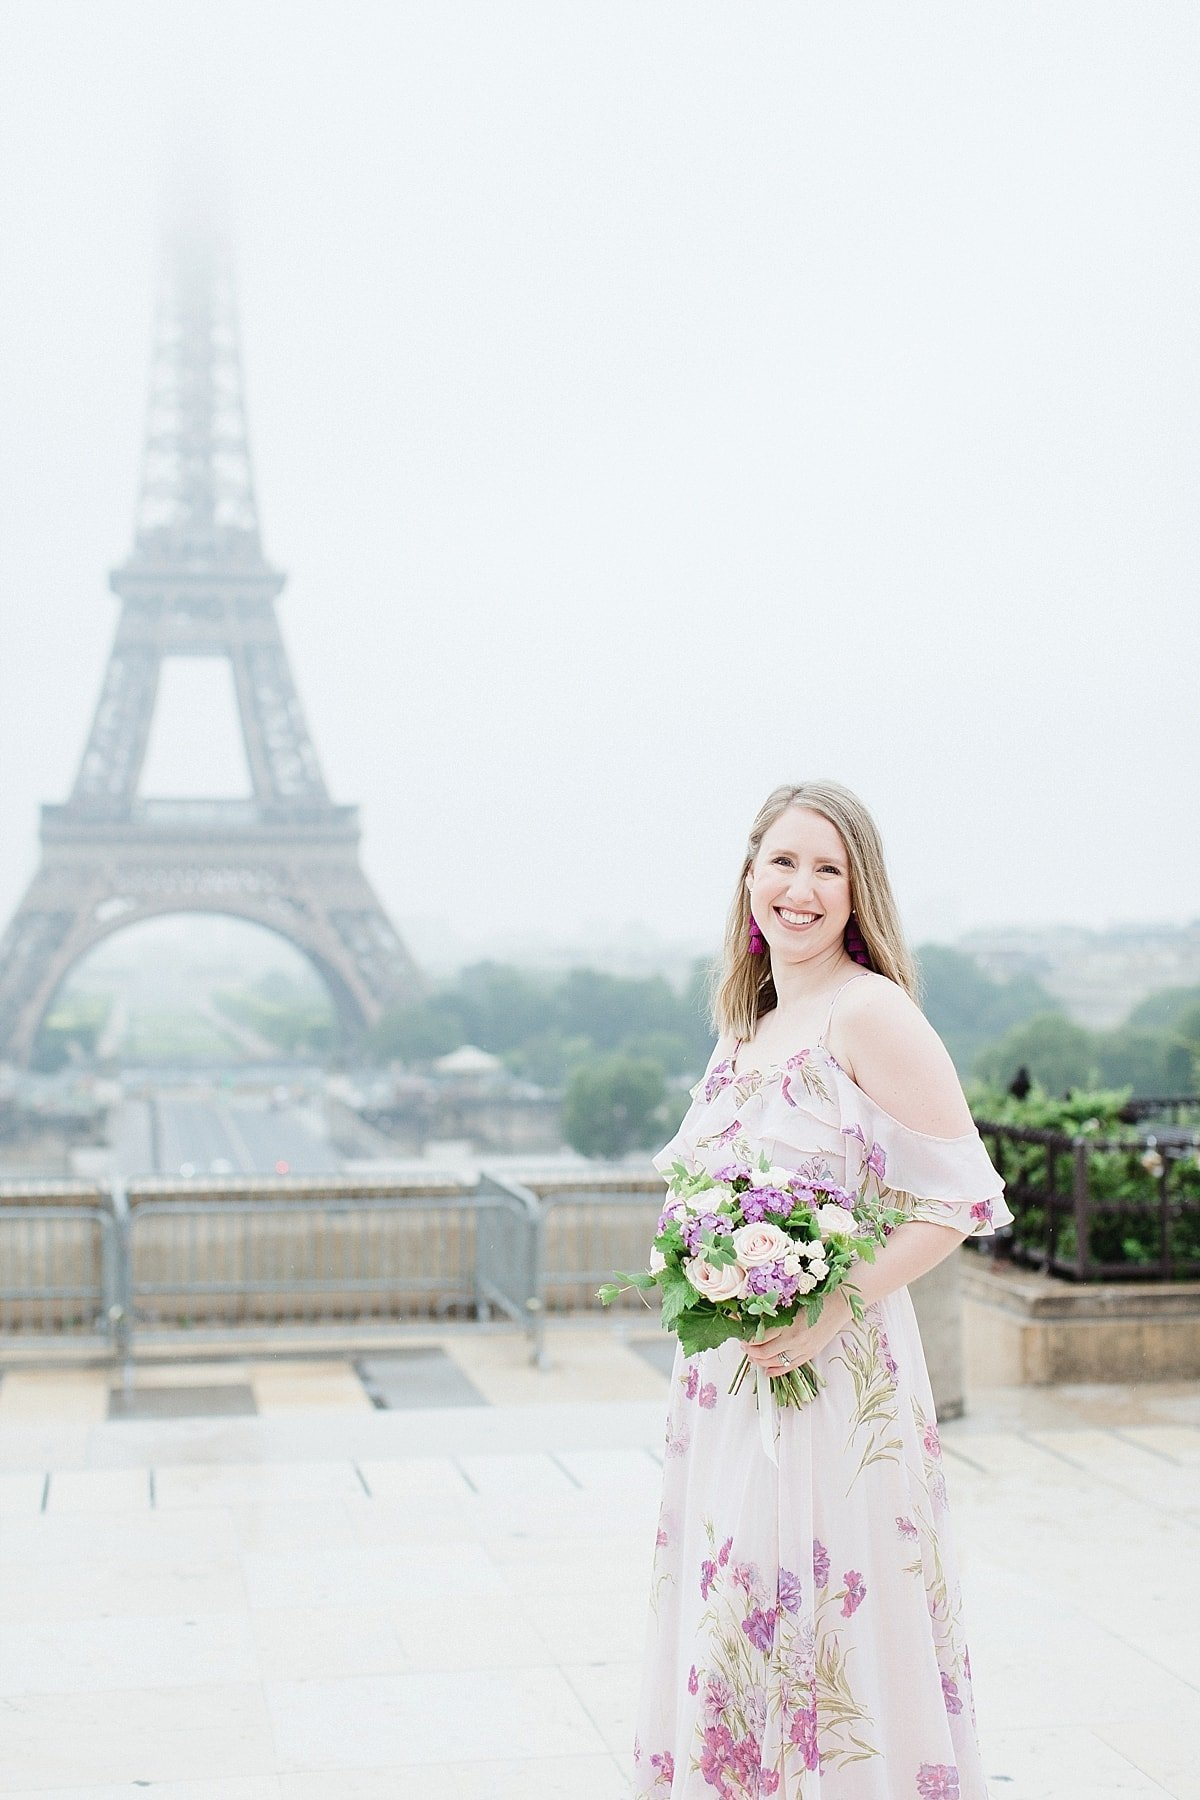 paris-photo-session-anniversary-alicia-yarrish-photography_08